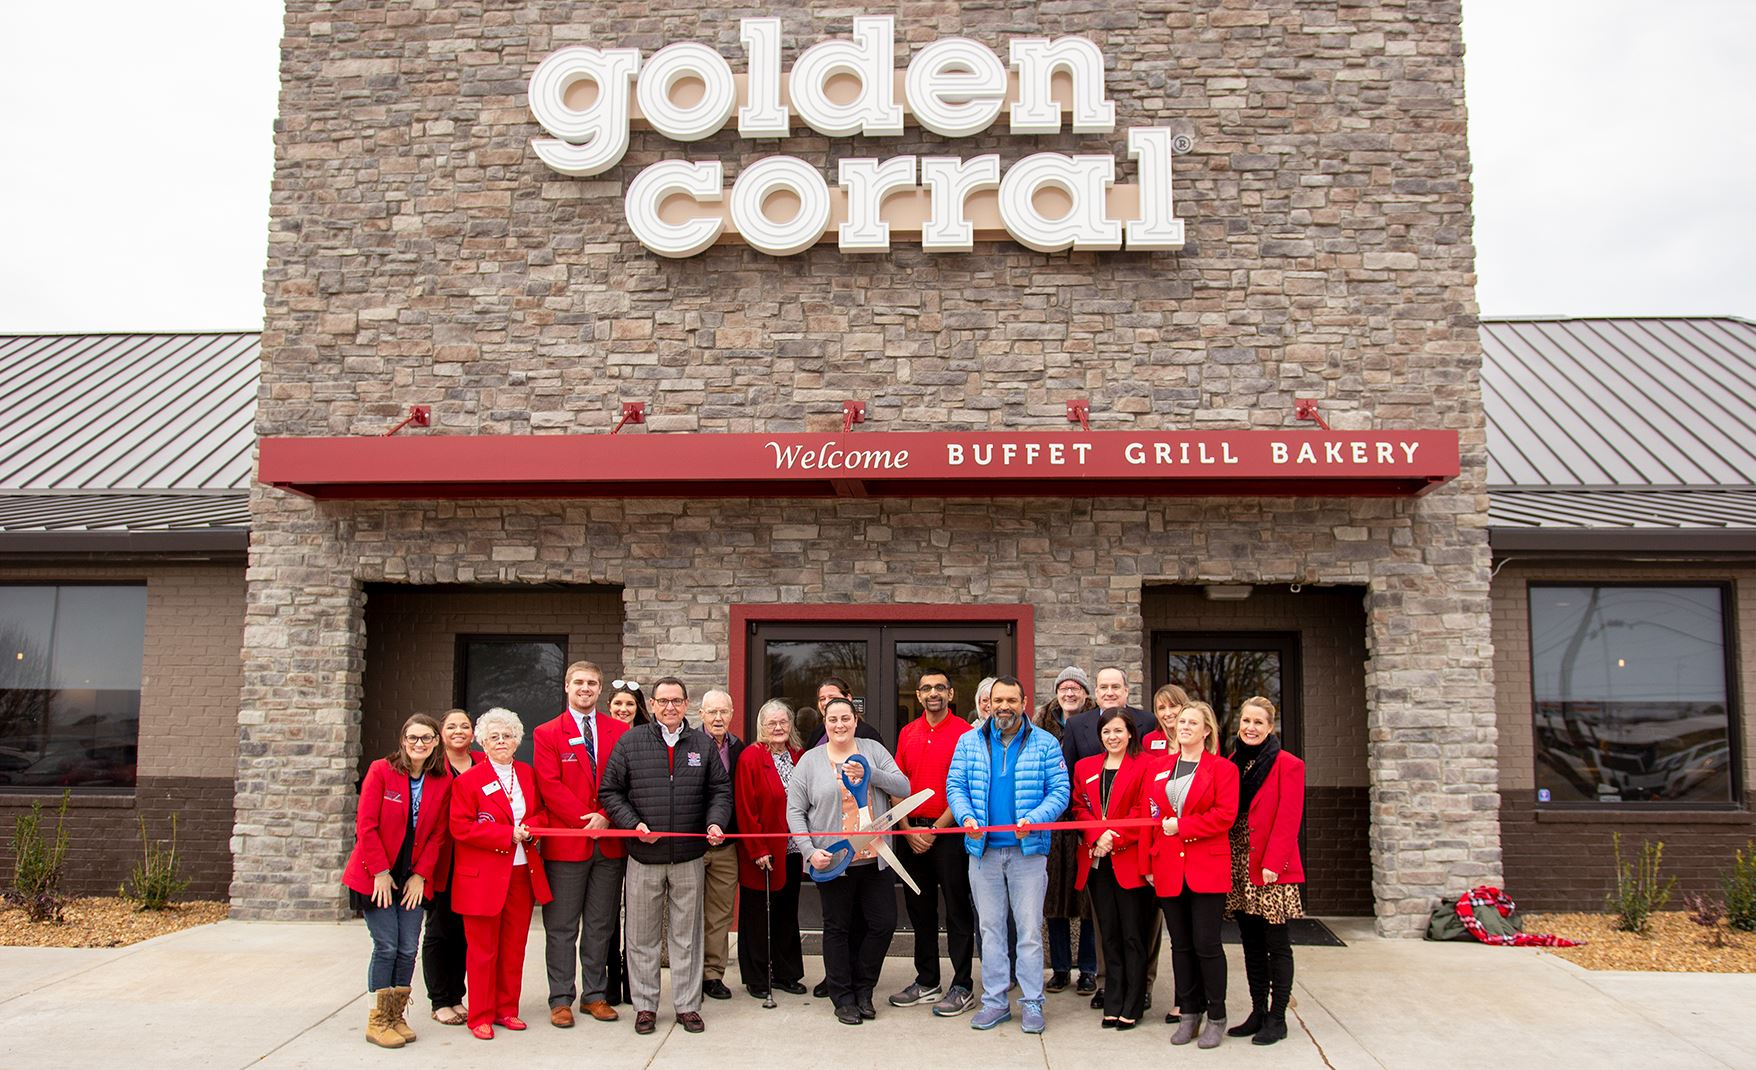 golden corral of jonesboro ribbon cutting